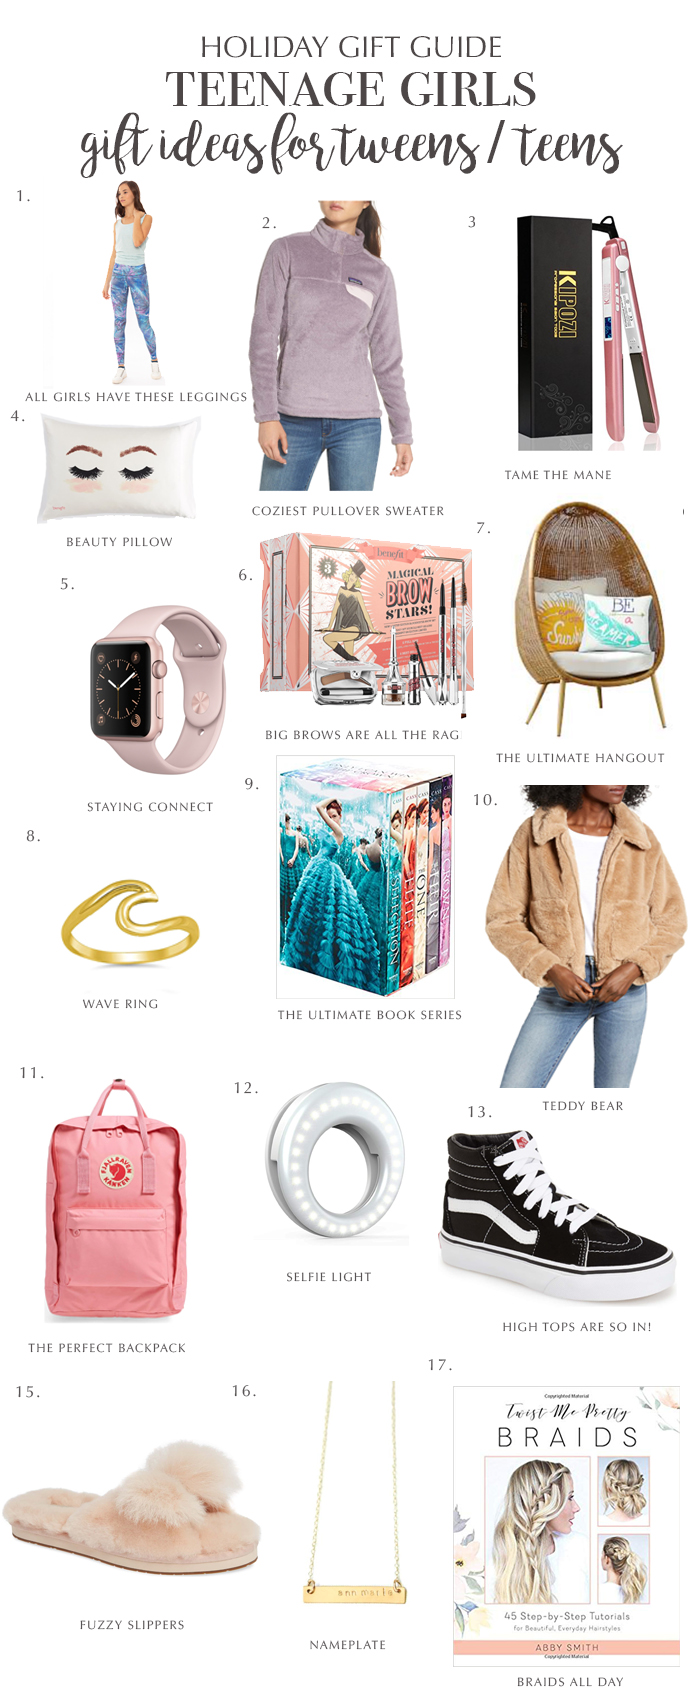 Look no further! The ultimate holiday gift guide for teen girls for cover all over your holiday shopping needs    Darling Darleen #holidaygiftguide #giftsforteengirls #darlingdarleen